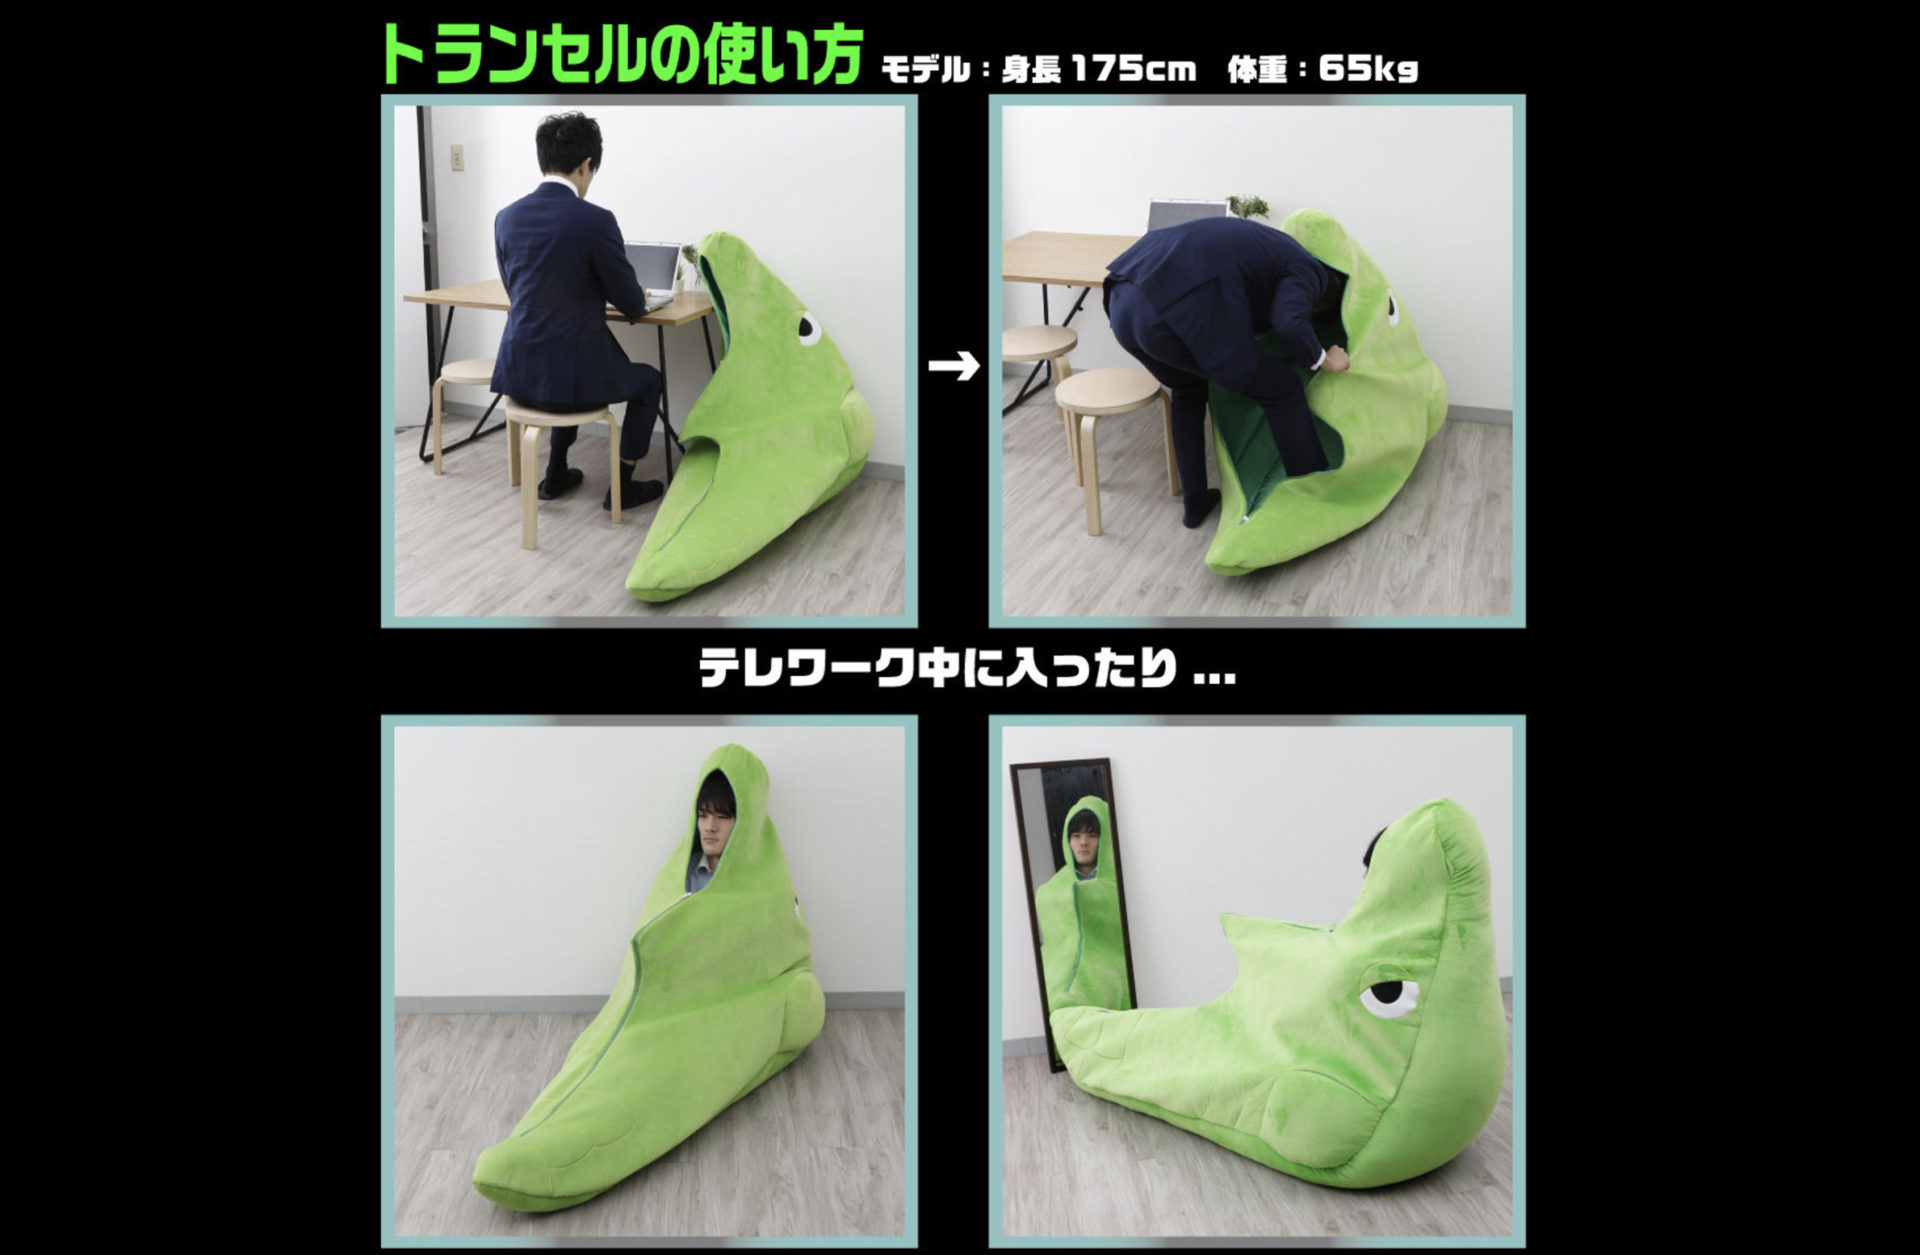 man getting into pokemon metapod costume